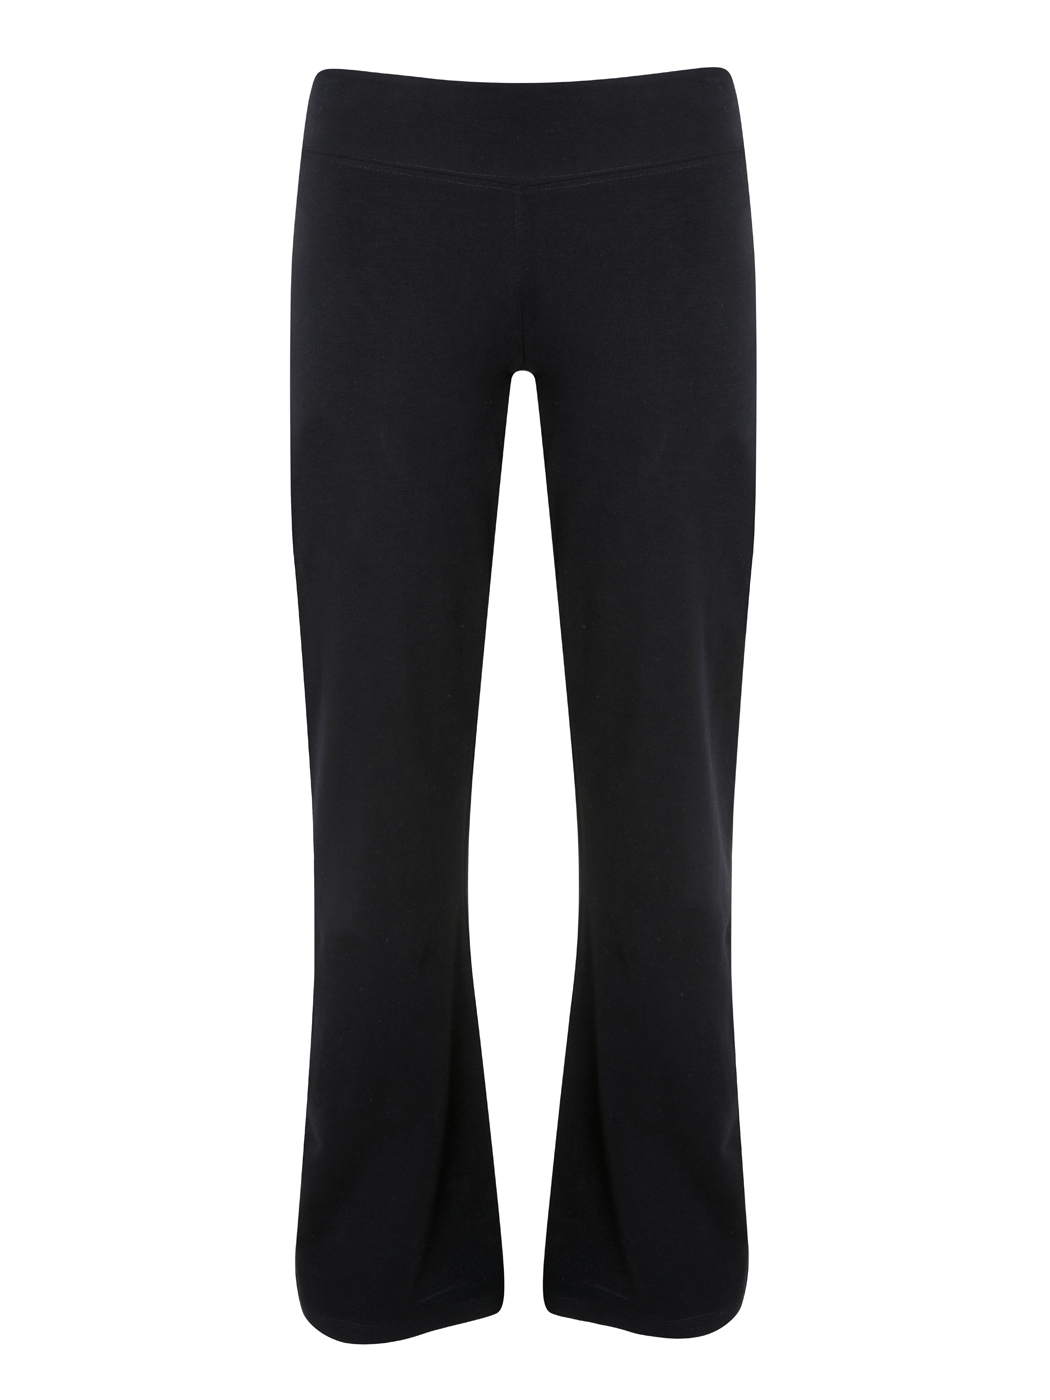 M Life Women's Lotus Yoga Pants | Bukser